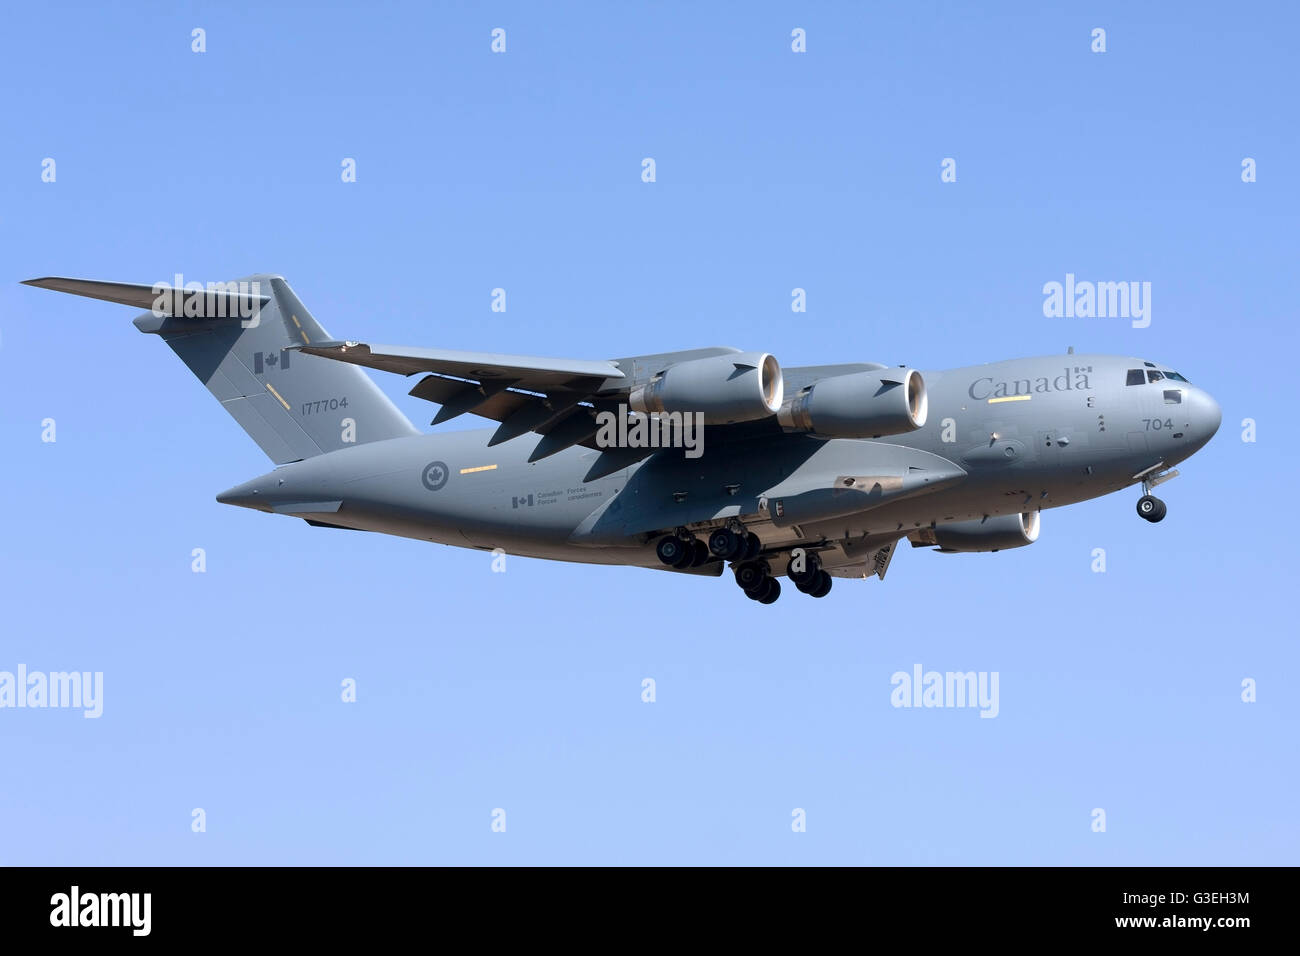 Canadian Air Force Boeing CC-177 Globemaster III (C-17A) on finals runway 06. - Stock Photo